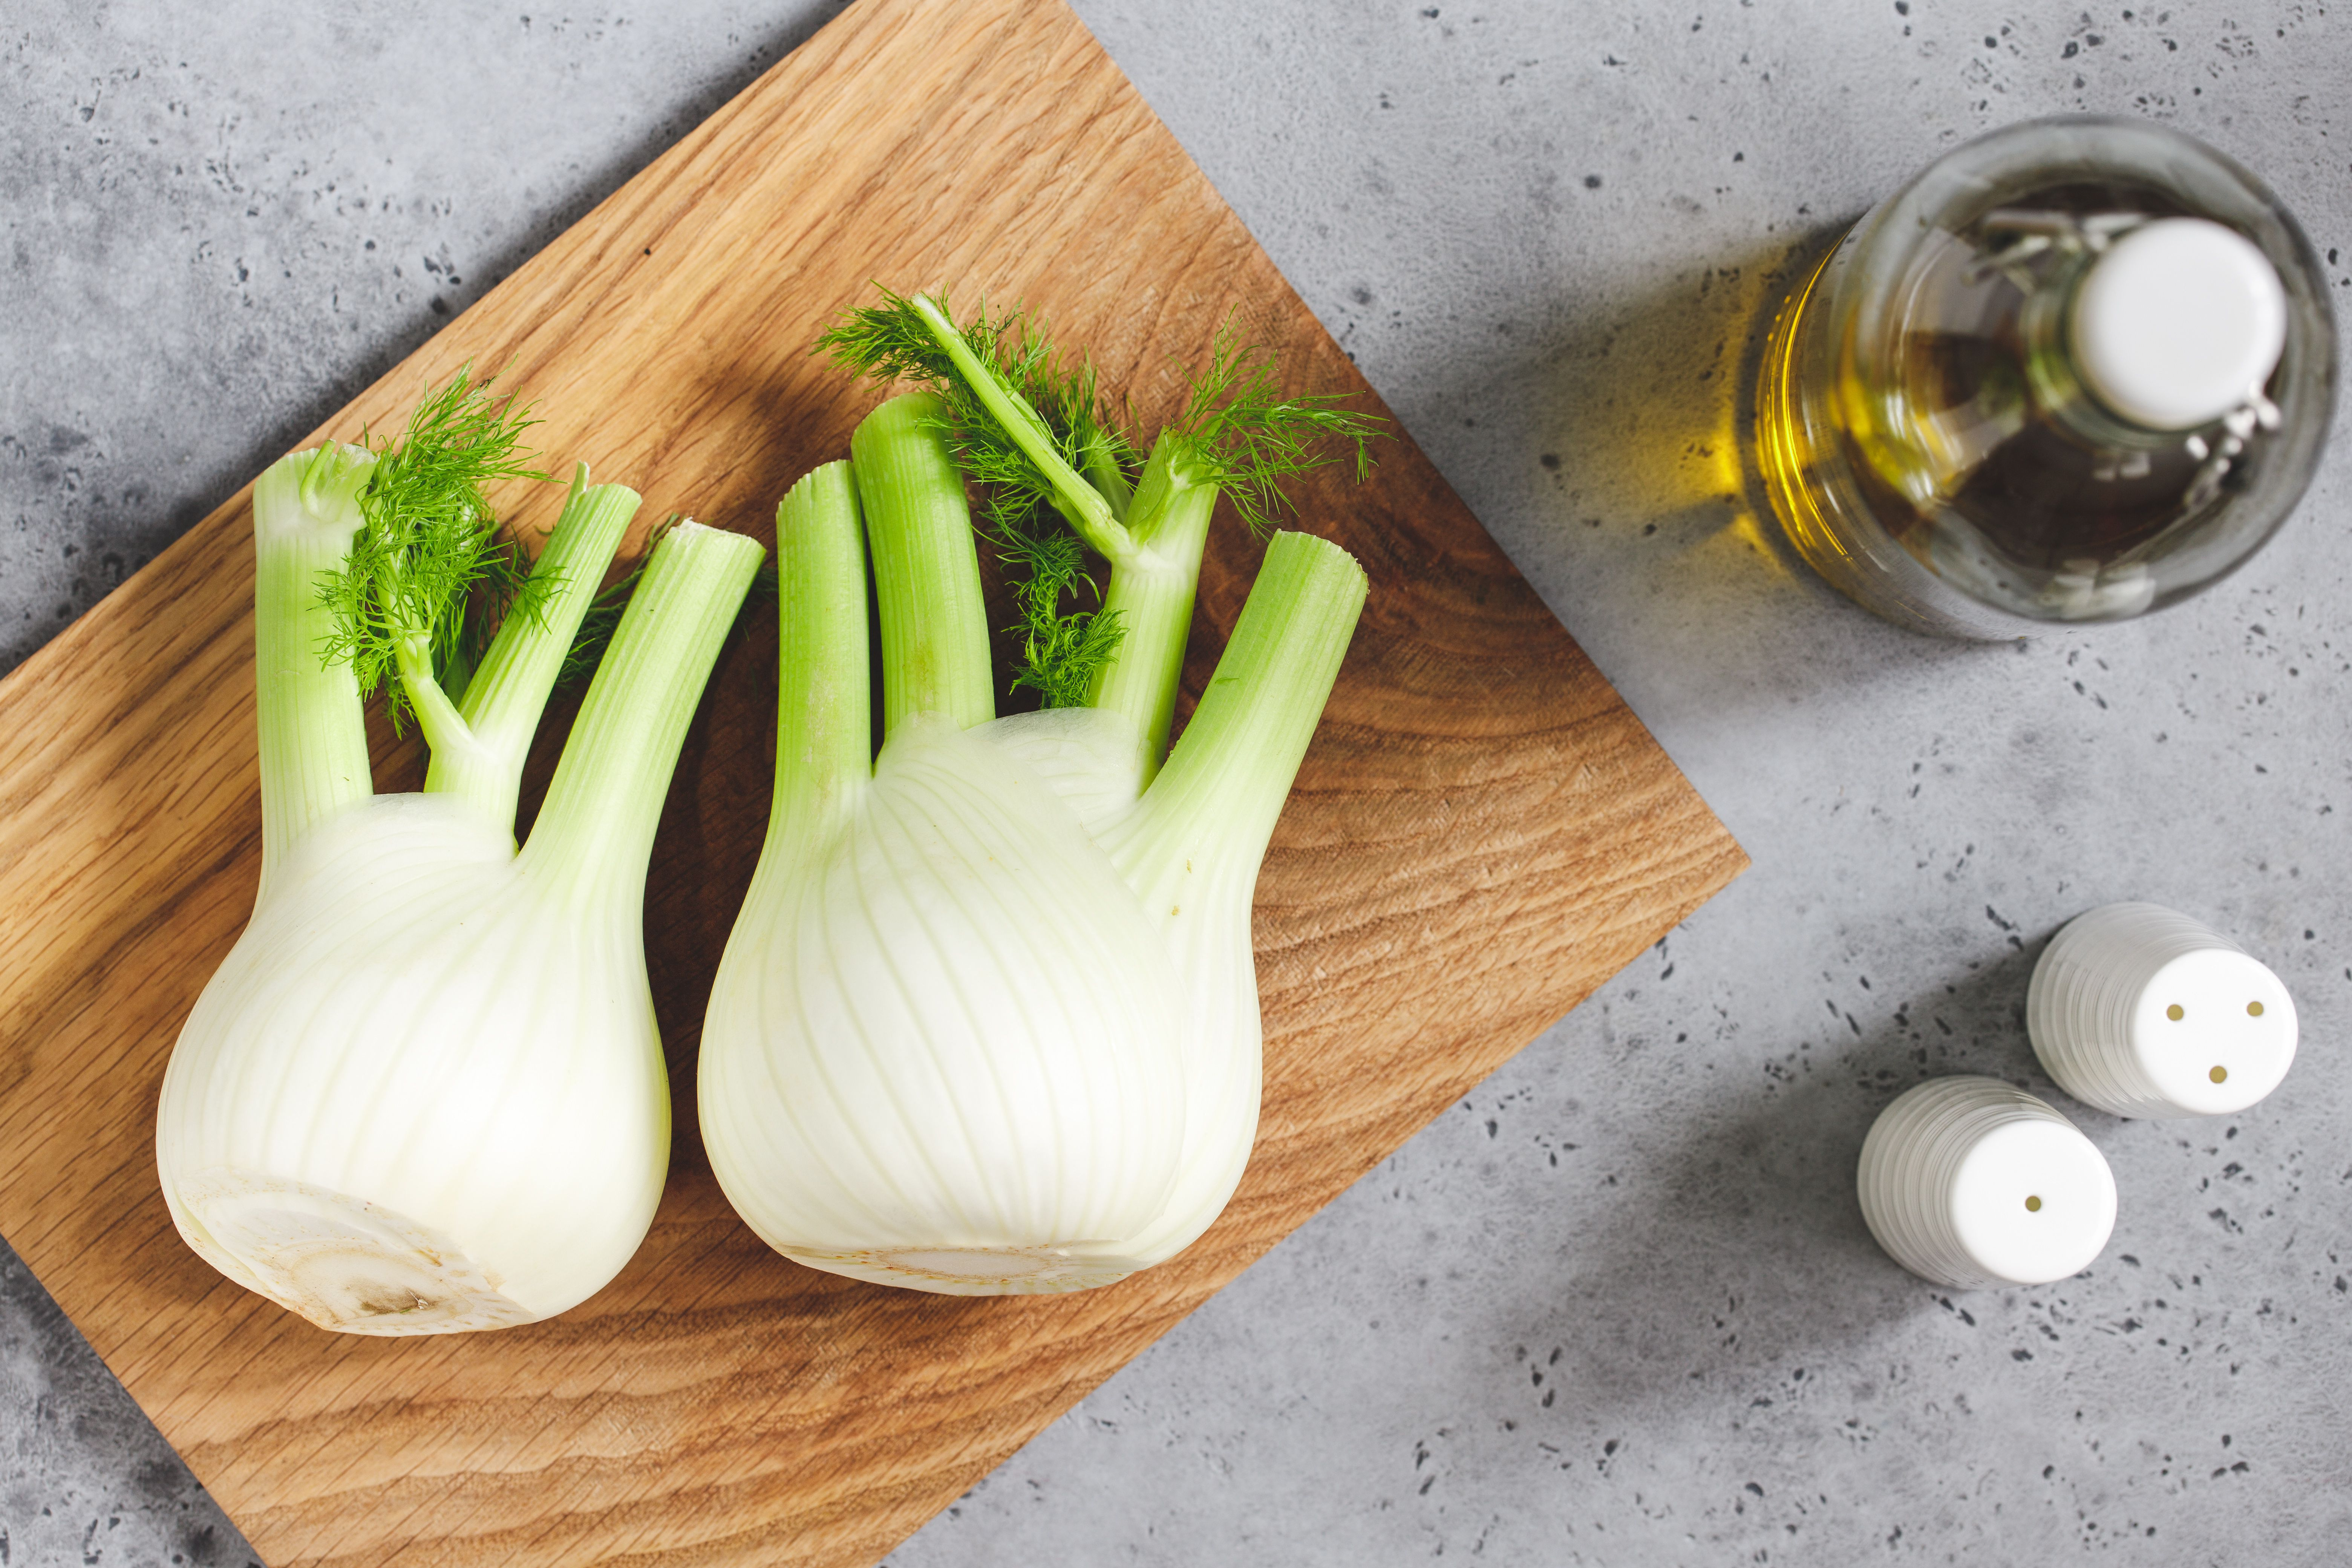 Ingredients for roasted fennel